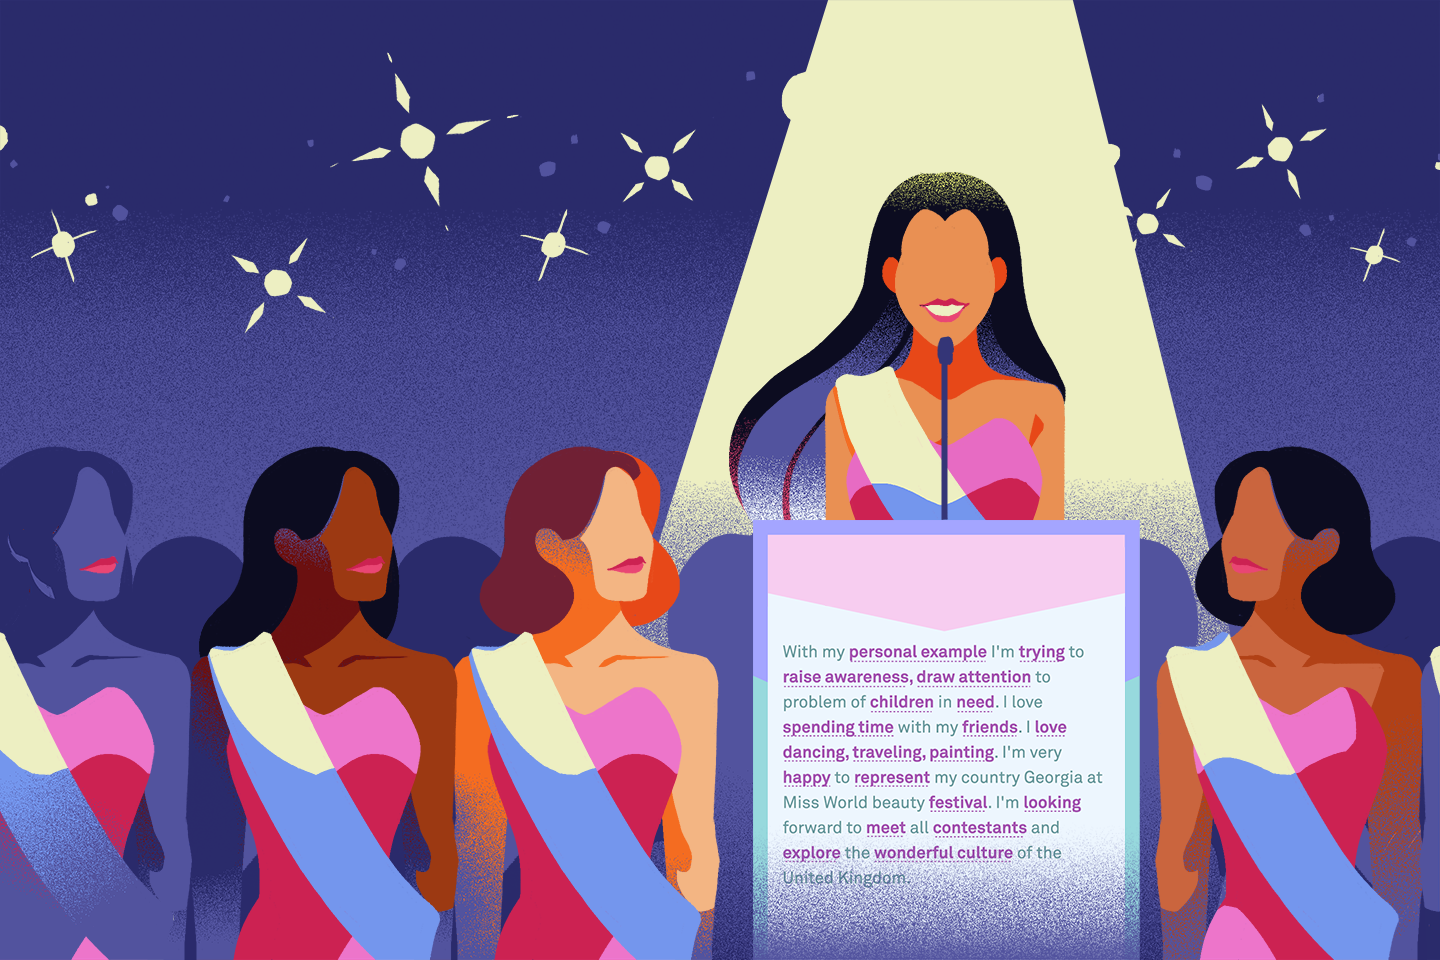 illustrated cover image of beauty pageant contestants, with one speaking at a podium